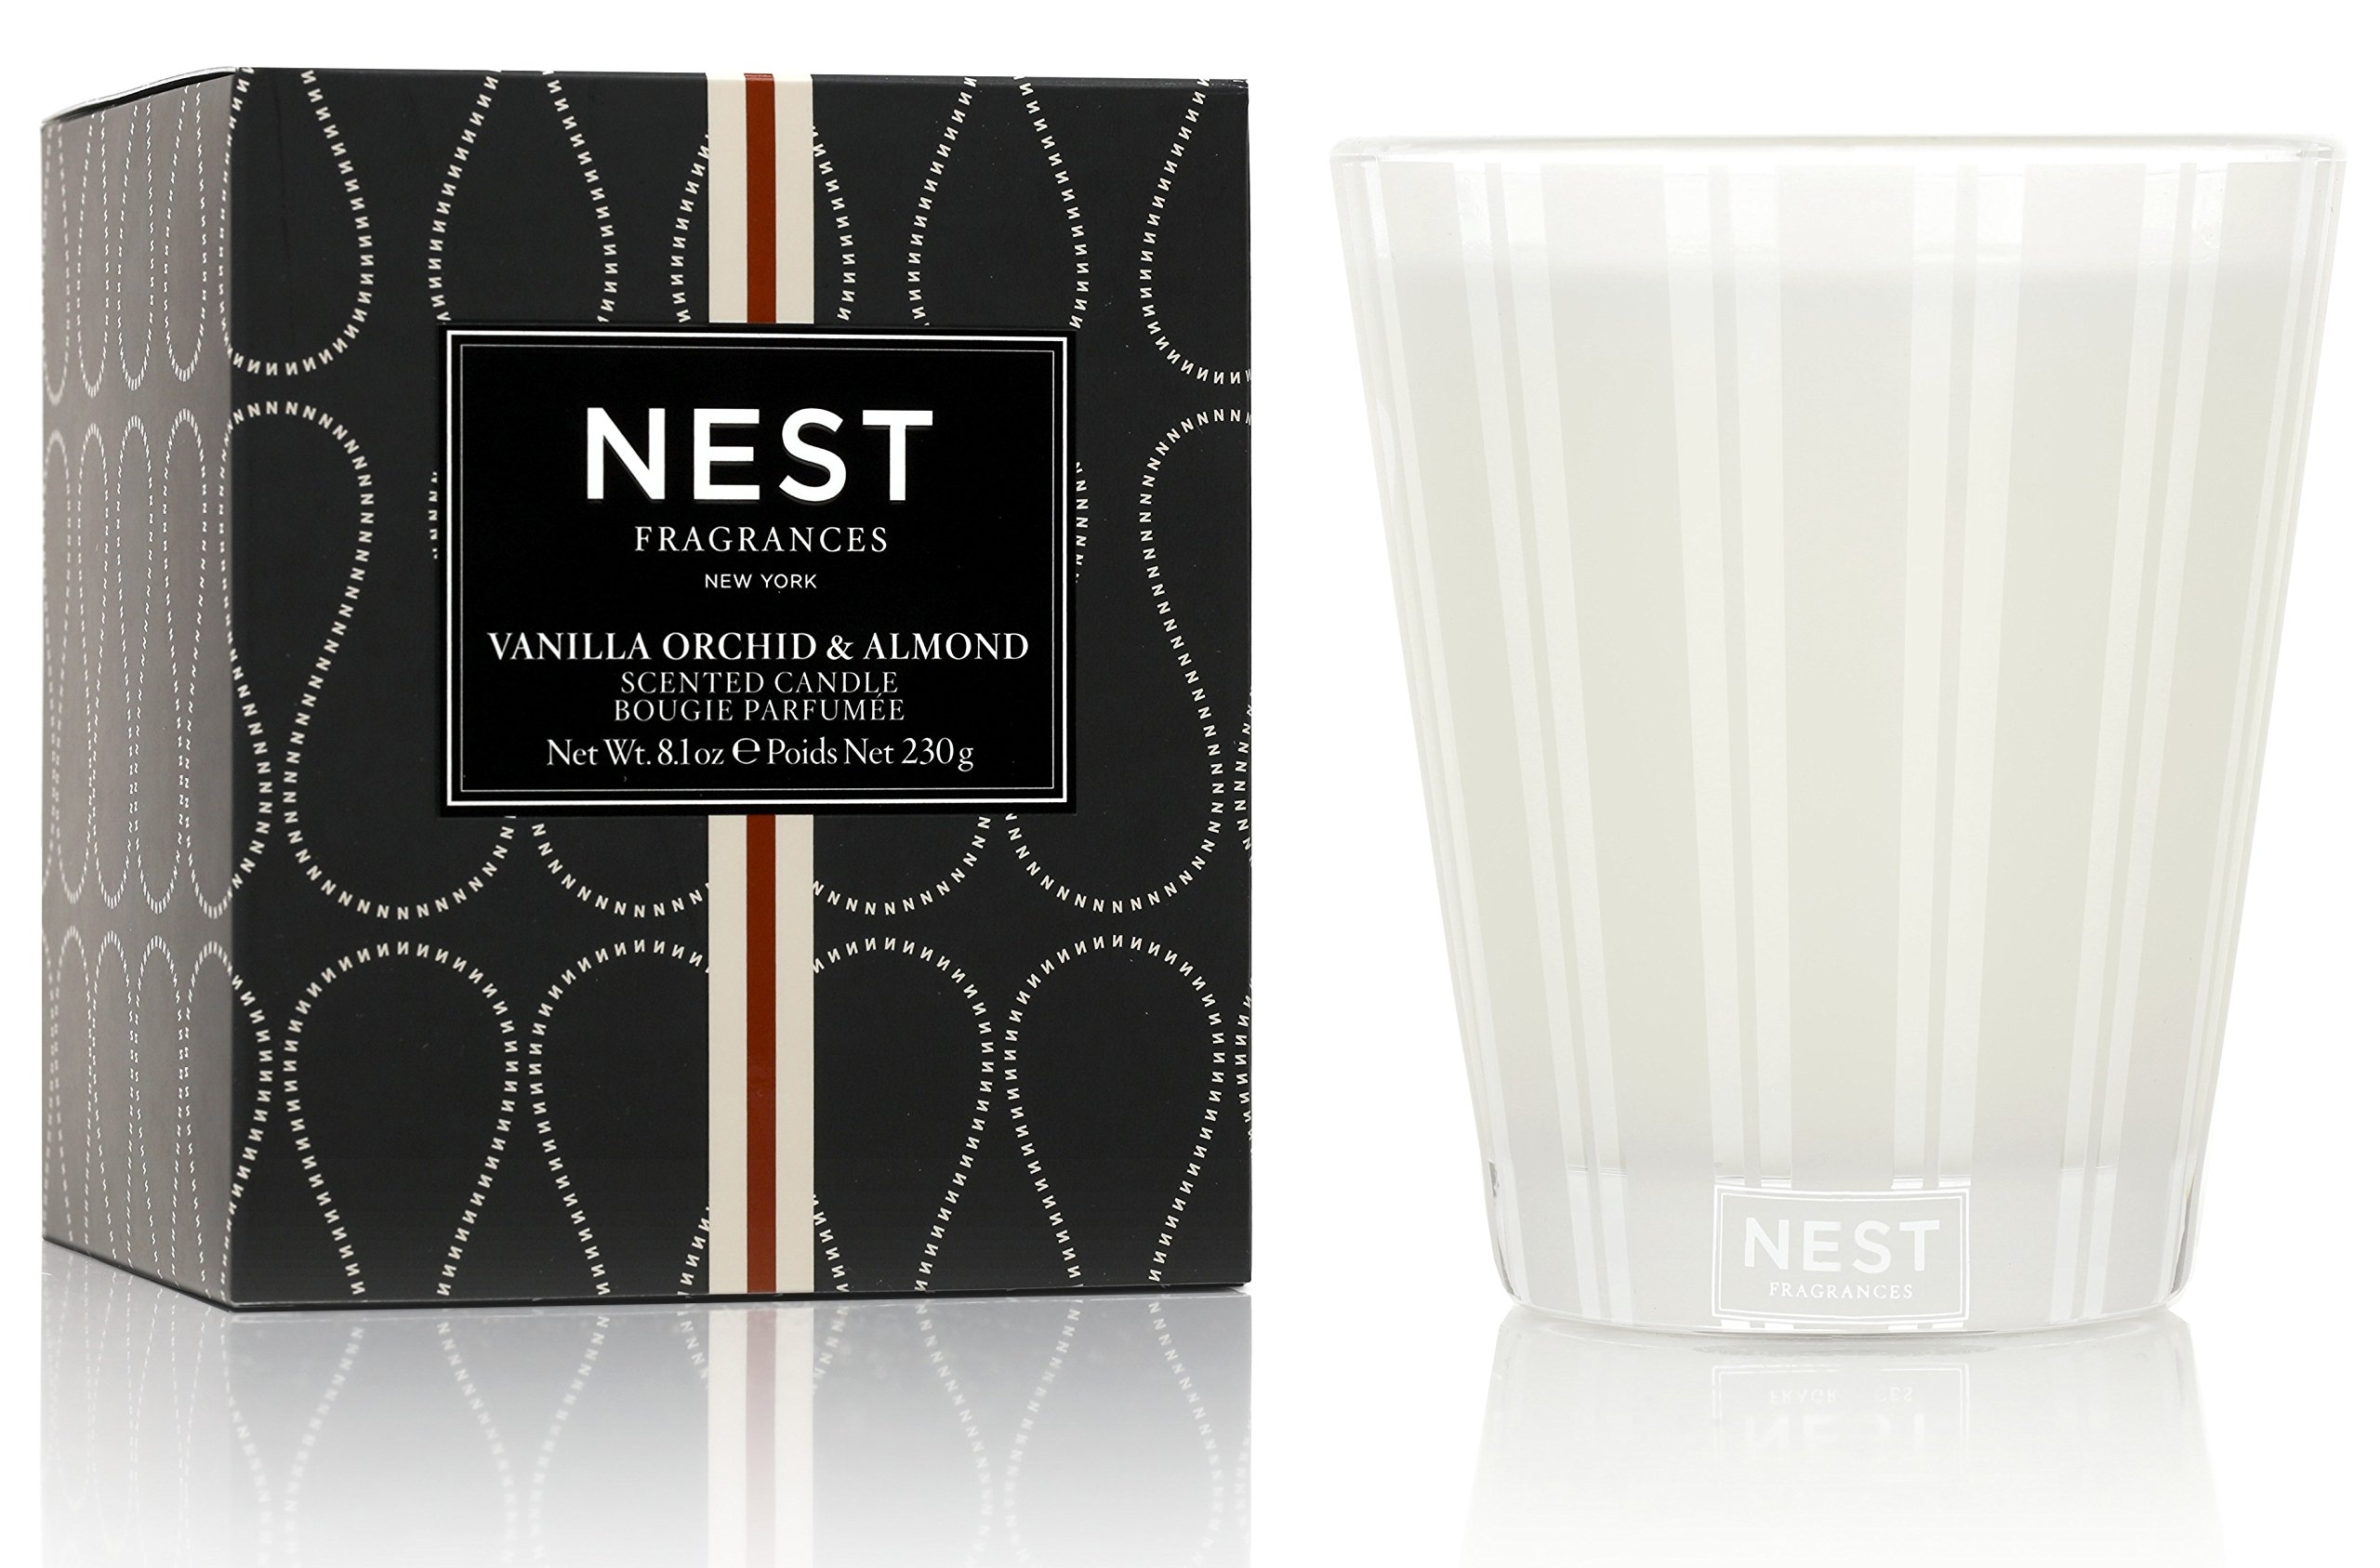 NEST Fragrances Classic Candle- Vanilla Orchid & Almond , 8.1 oz - NEST01-VO